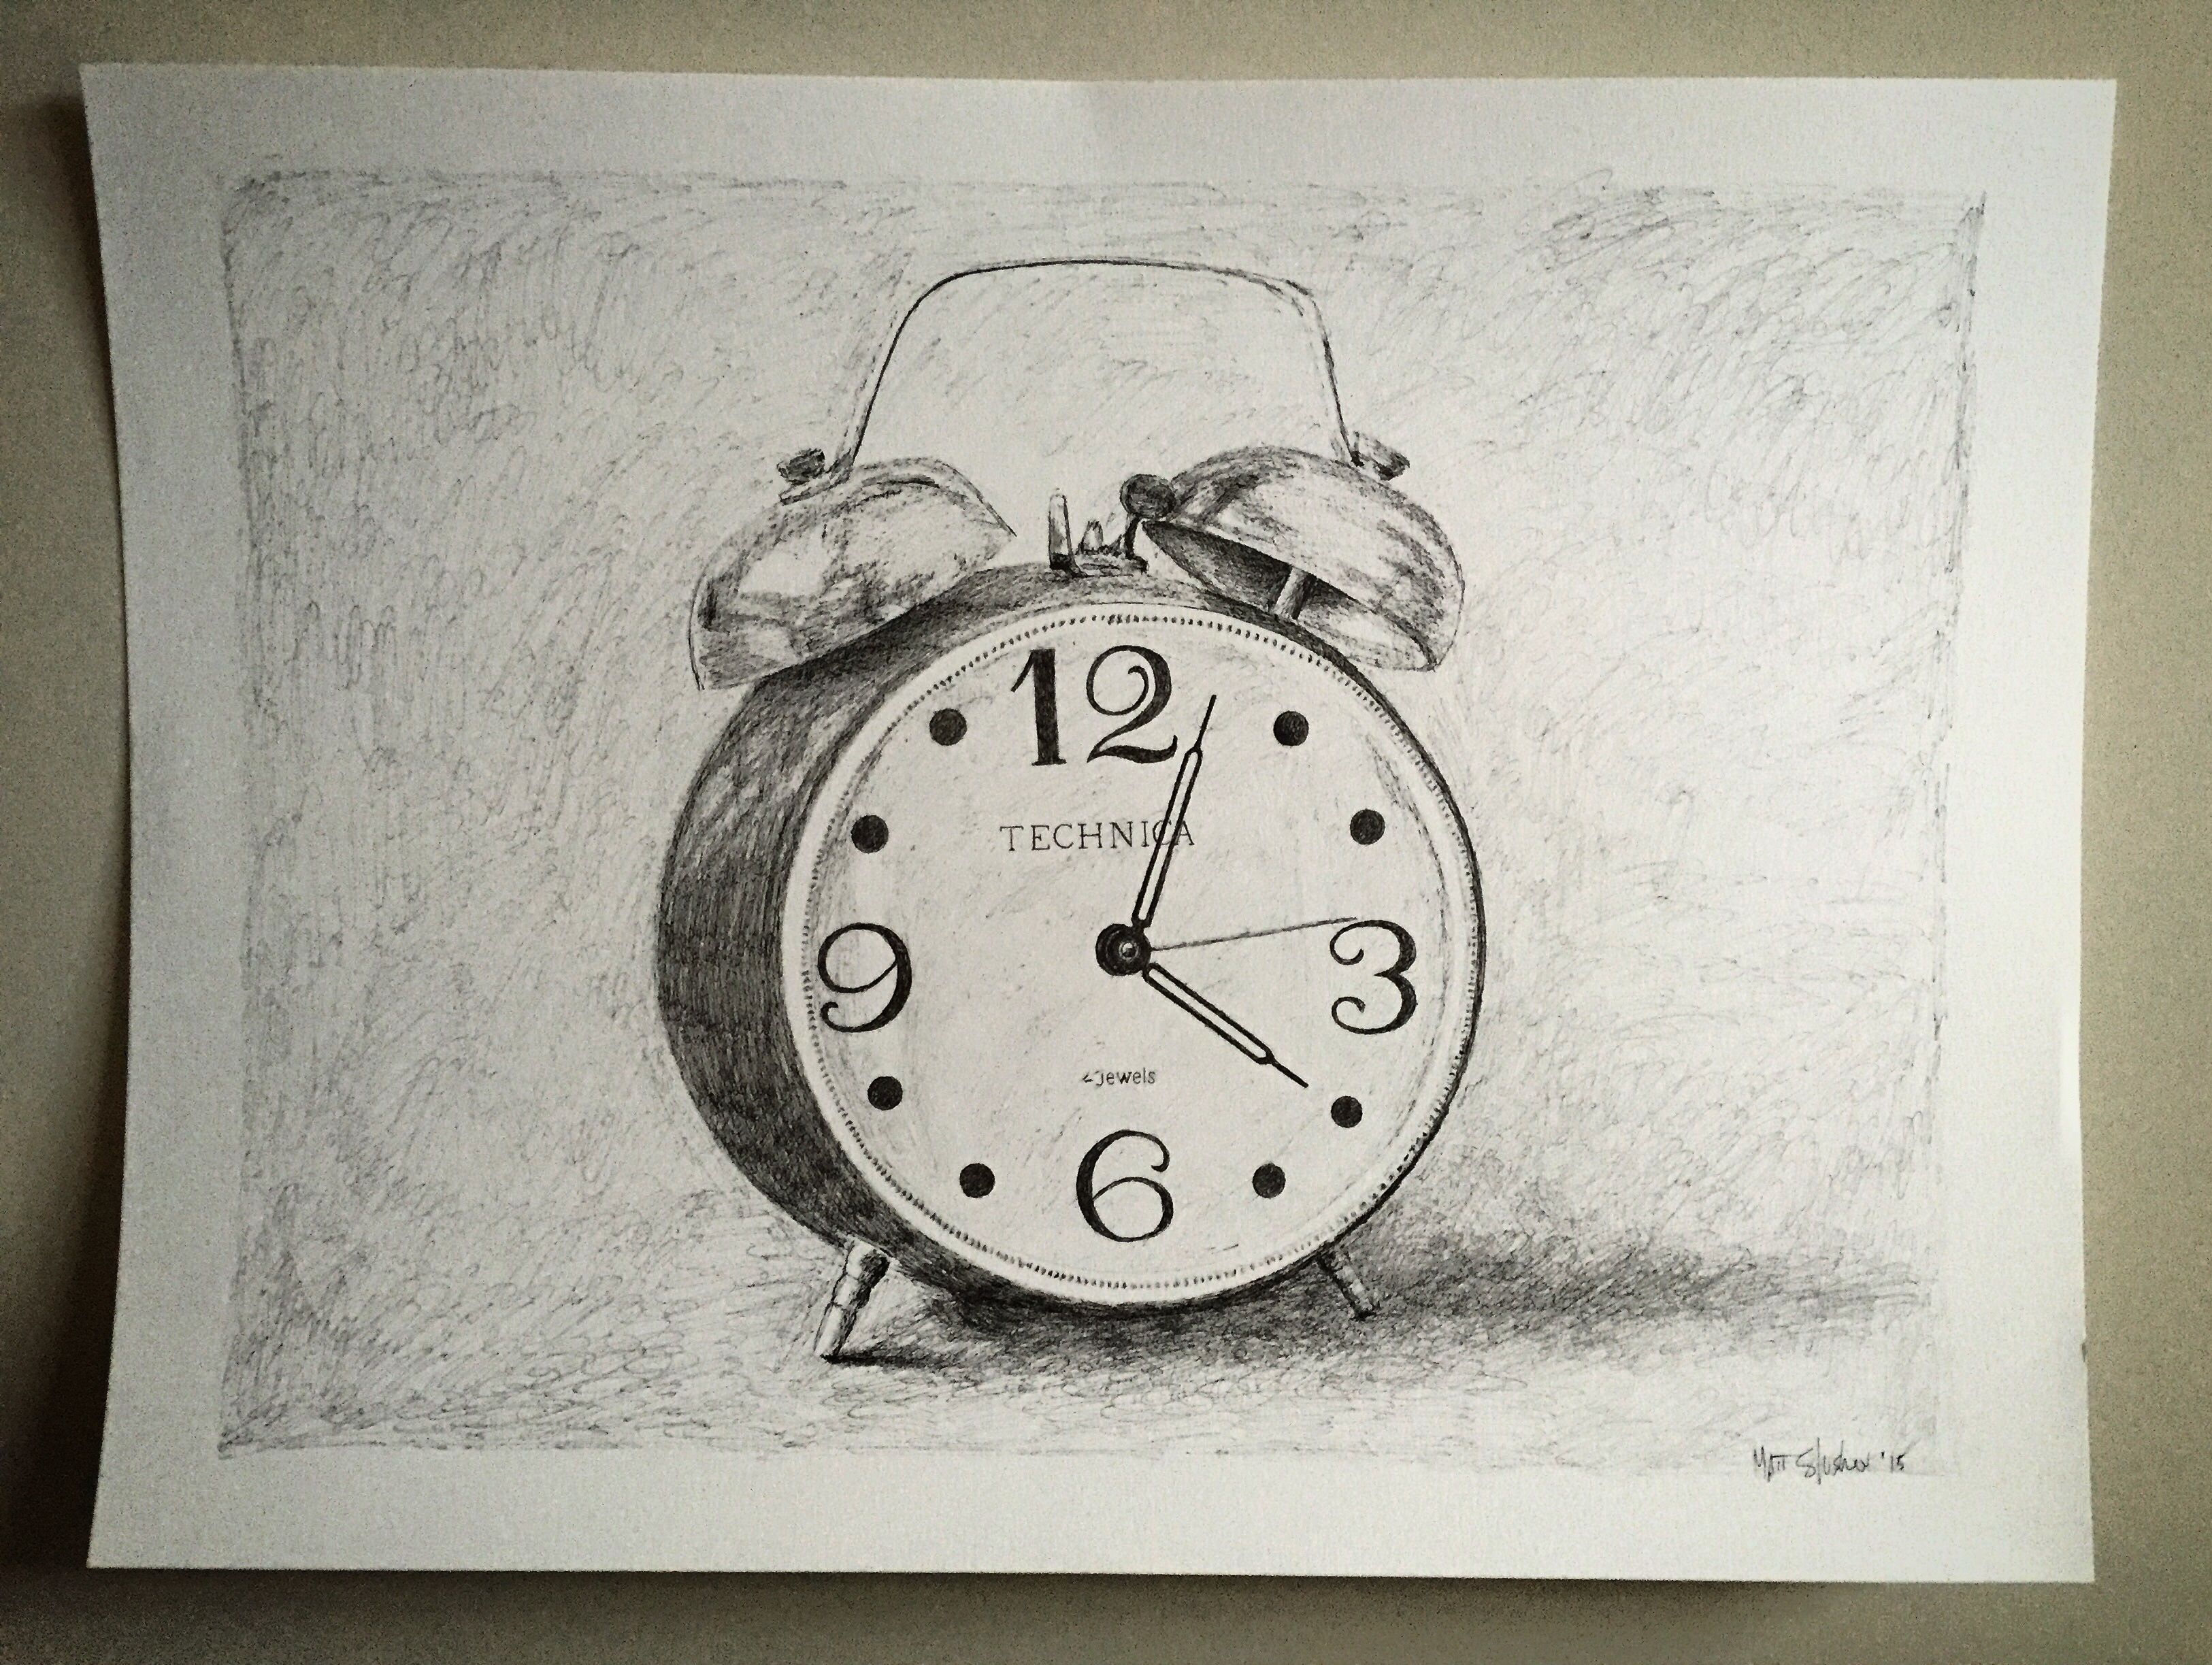 3251x2447 Antique Alarm Clock Drawing. Fine Art. Pen And Ink 18 X 24 Inches